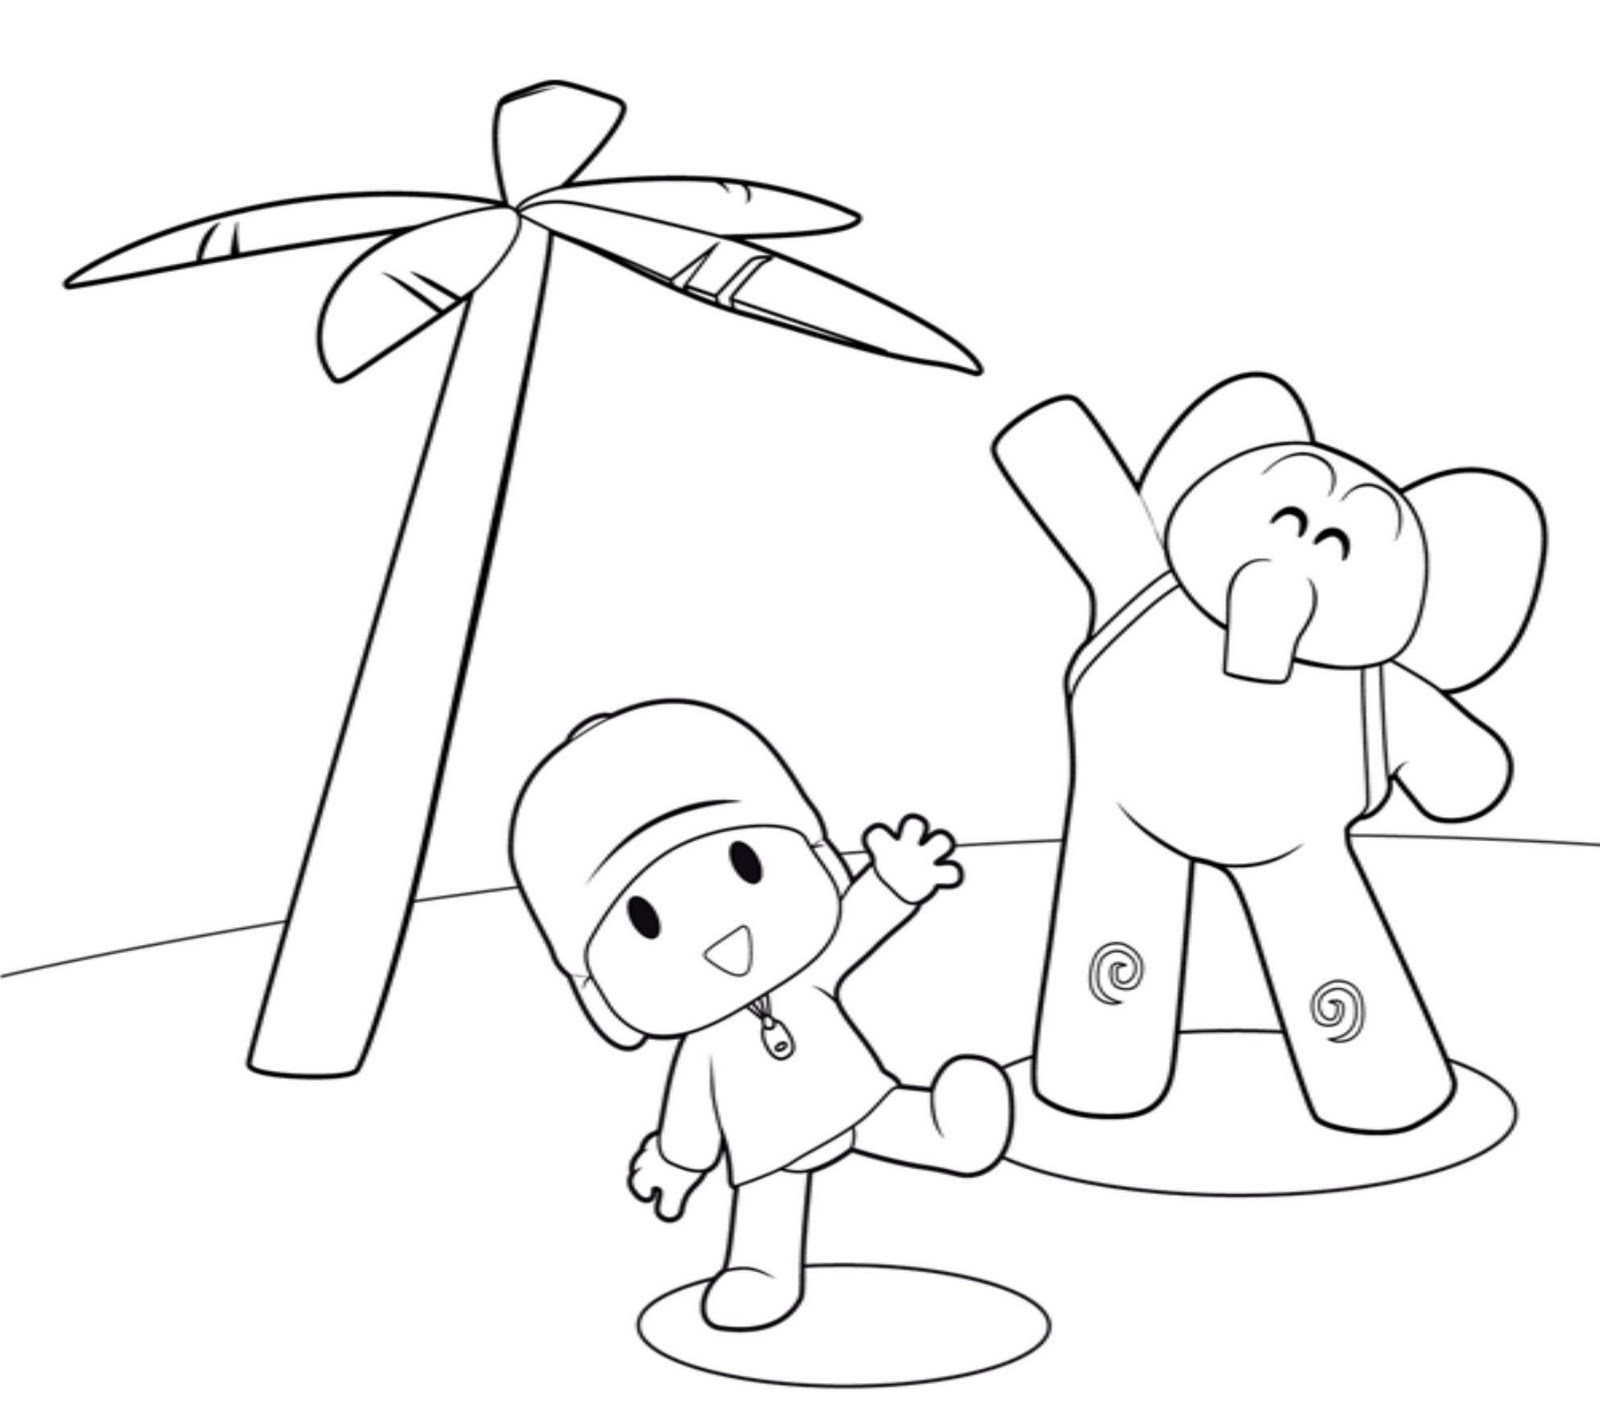 Pocoyo Coloring Pages Free Printable Coloring Pages Colouring In Pages